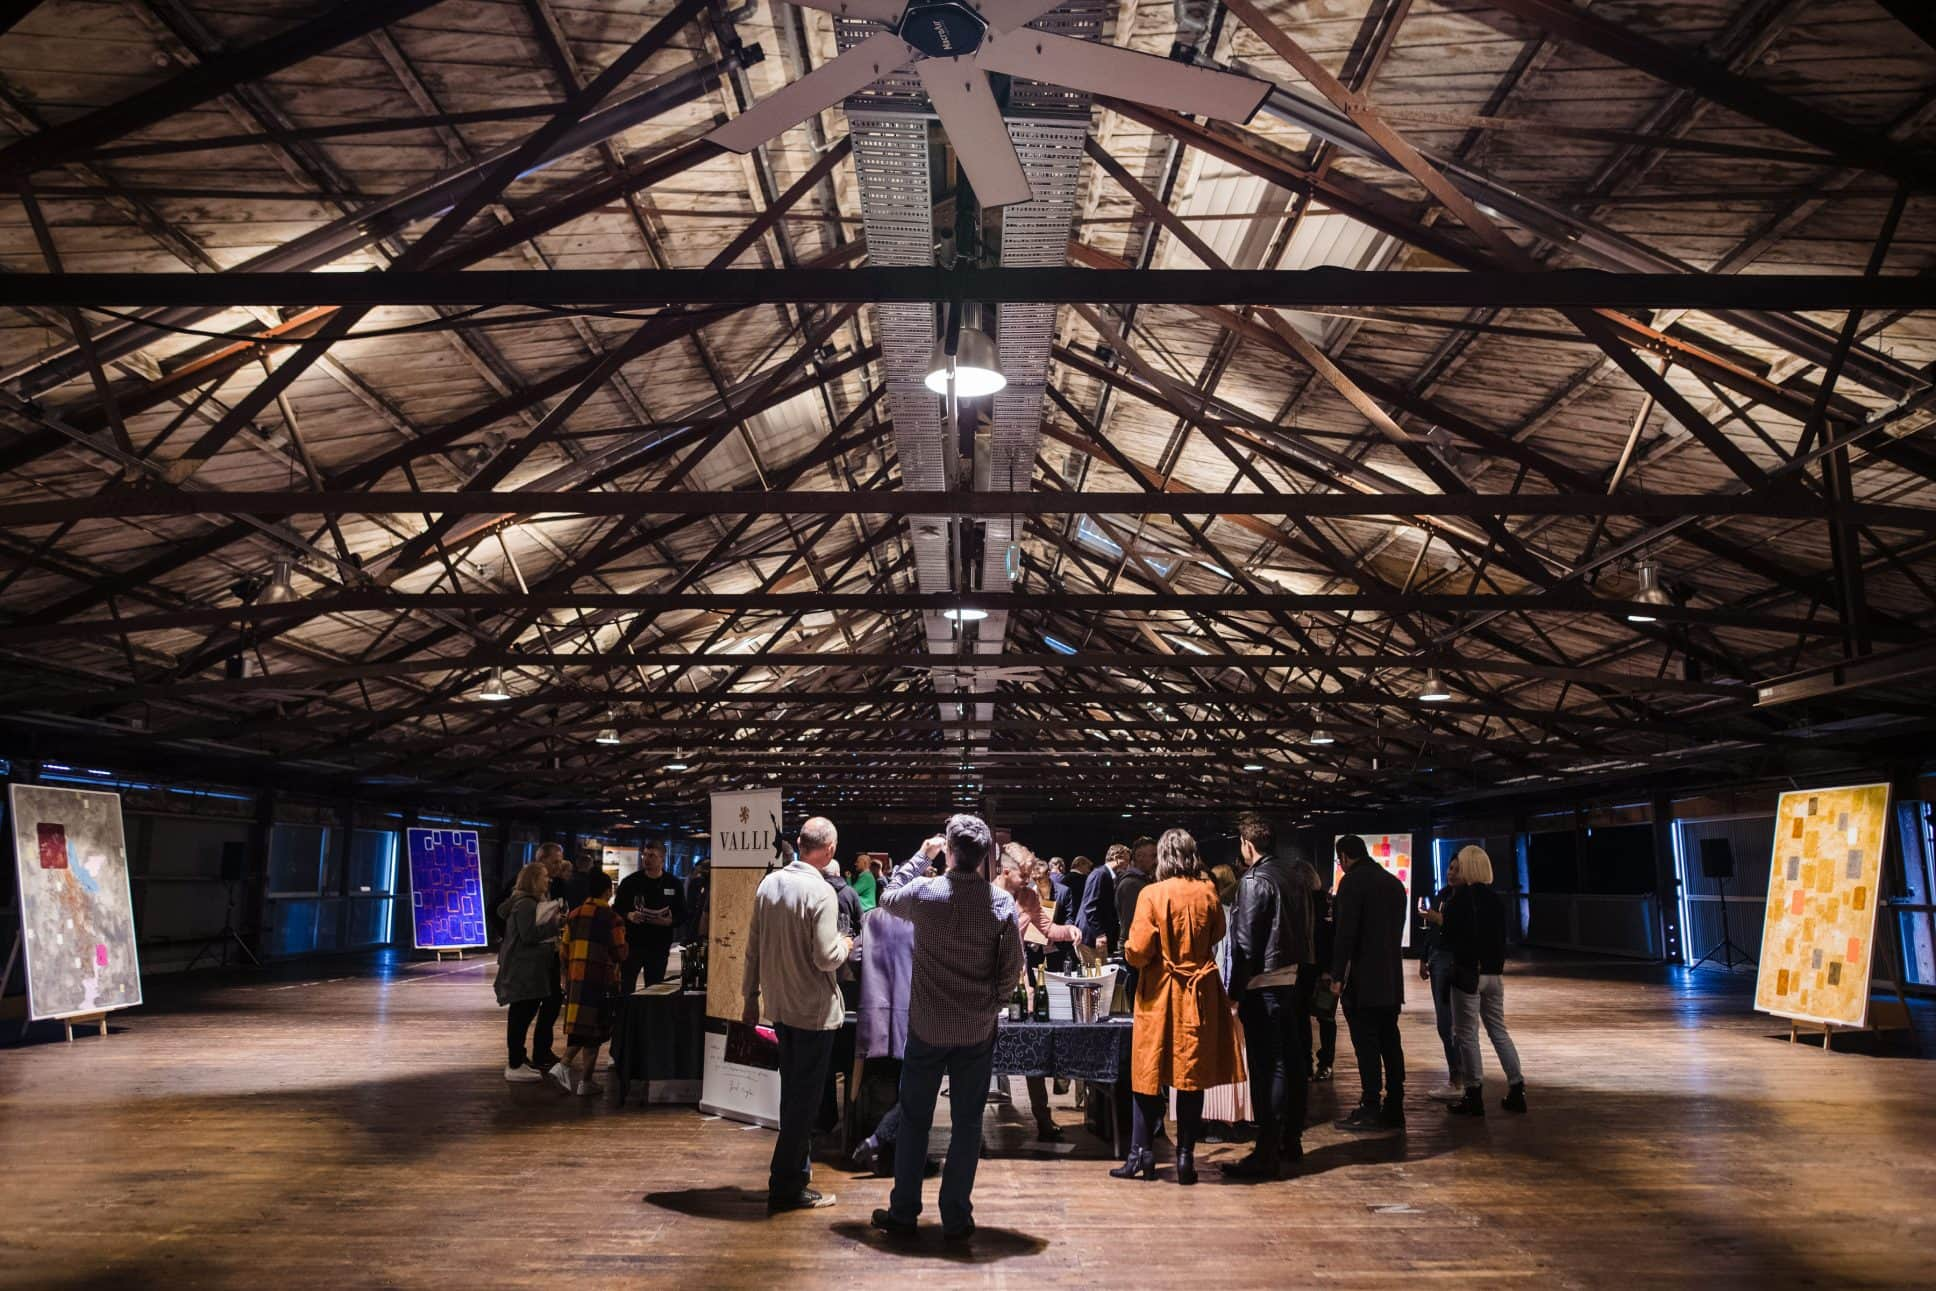 Art of wine wine tasting exhibition held at Auckland's Shed 10